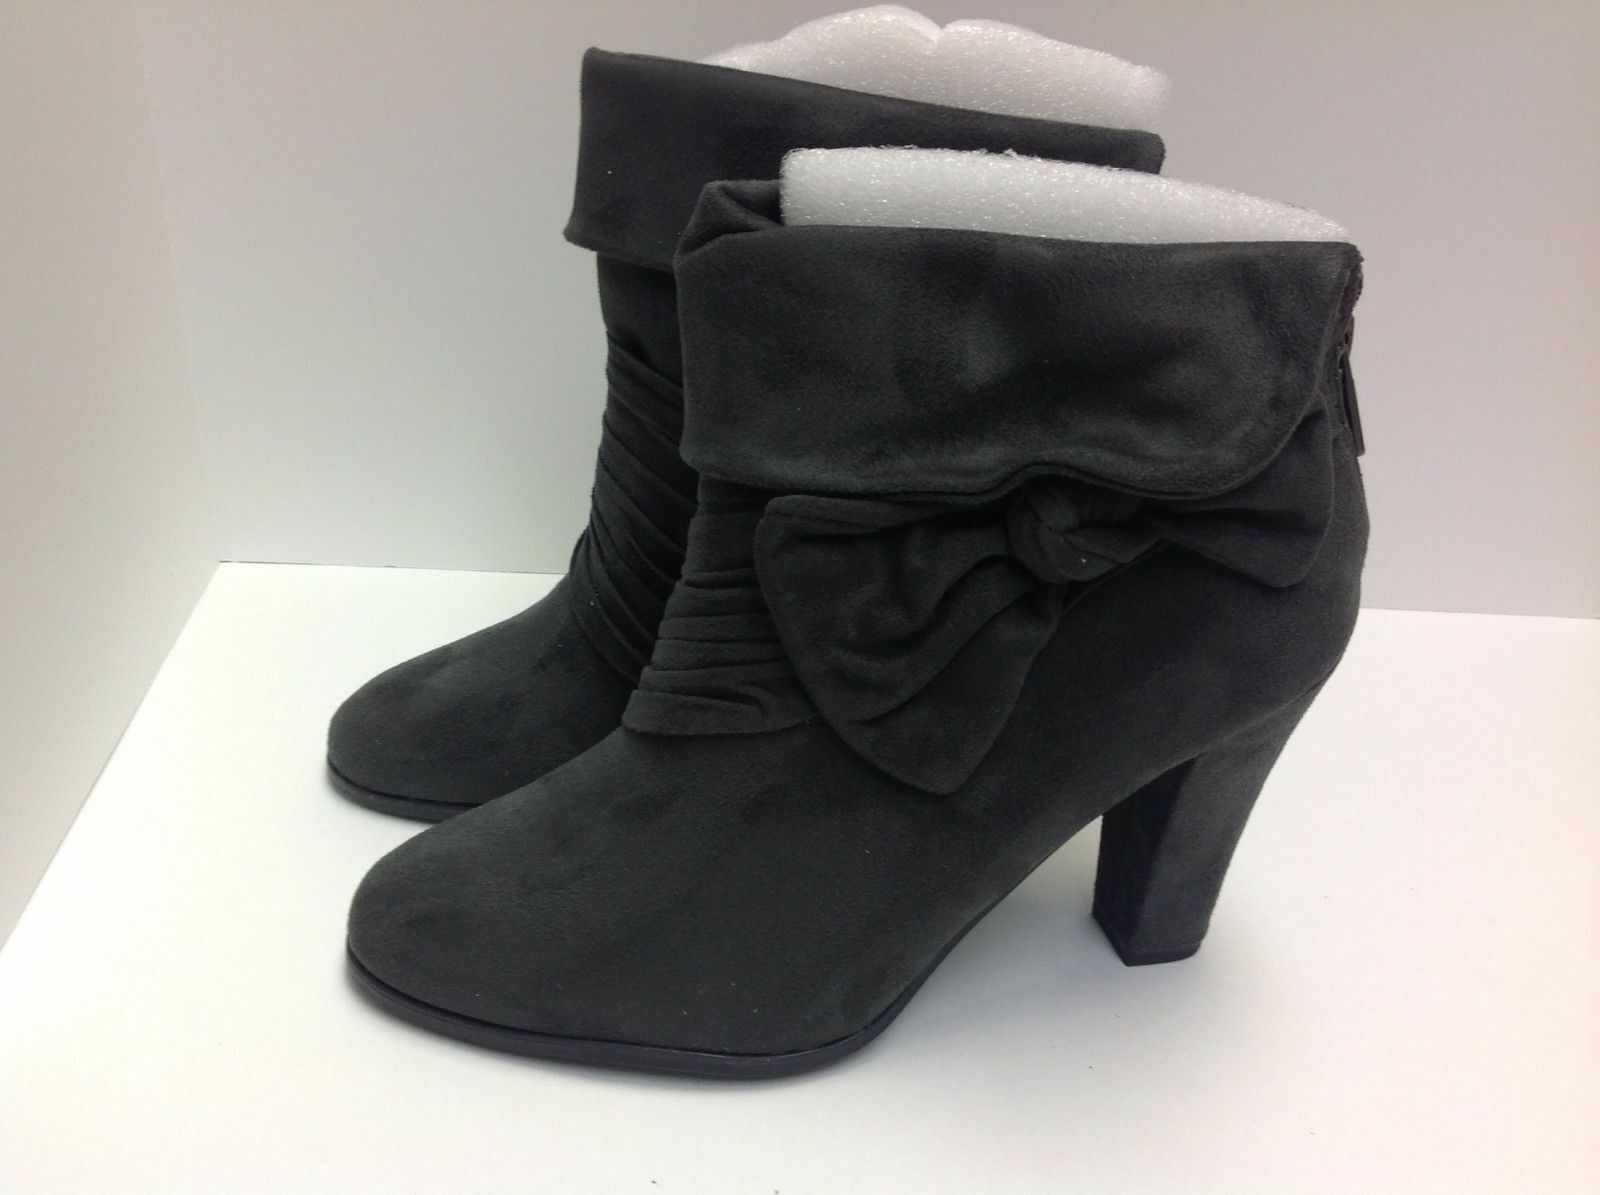 Anthropologie Impo vegan dark grey suede ankle boots 8.5 nwot